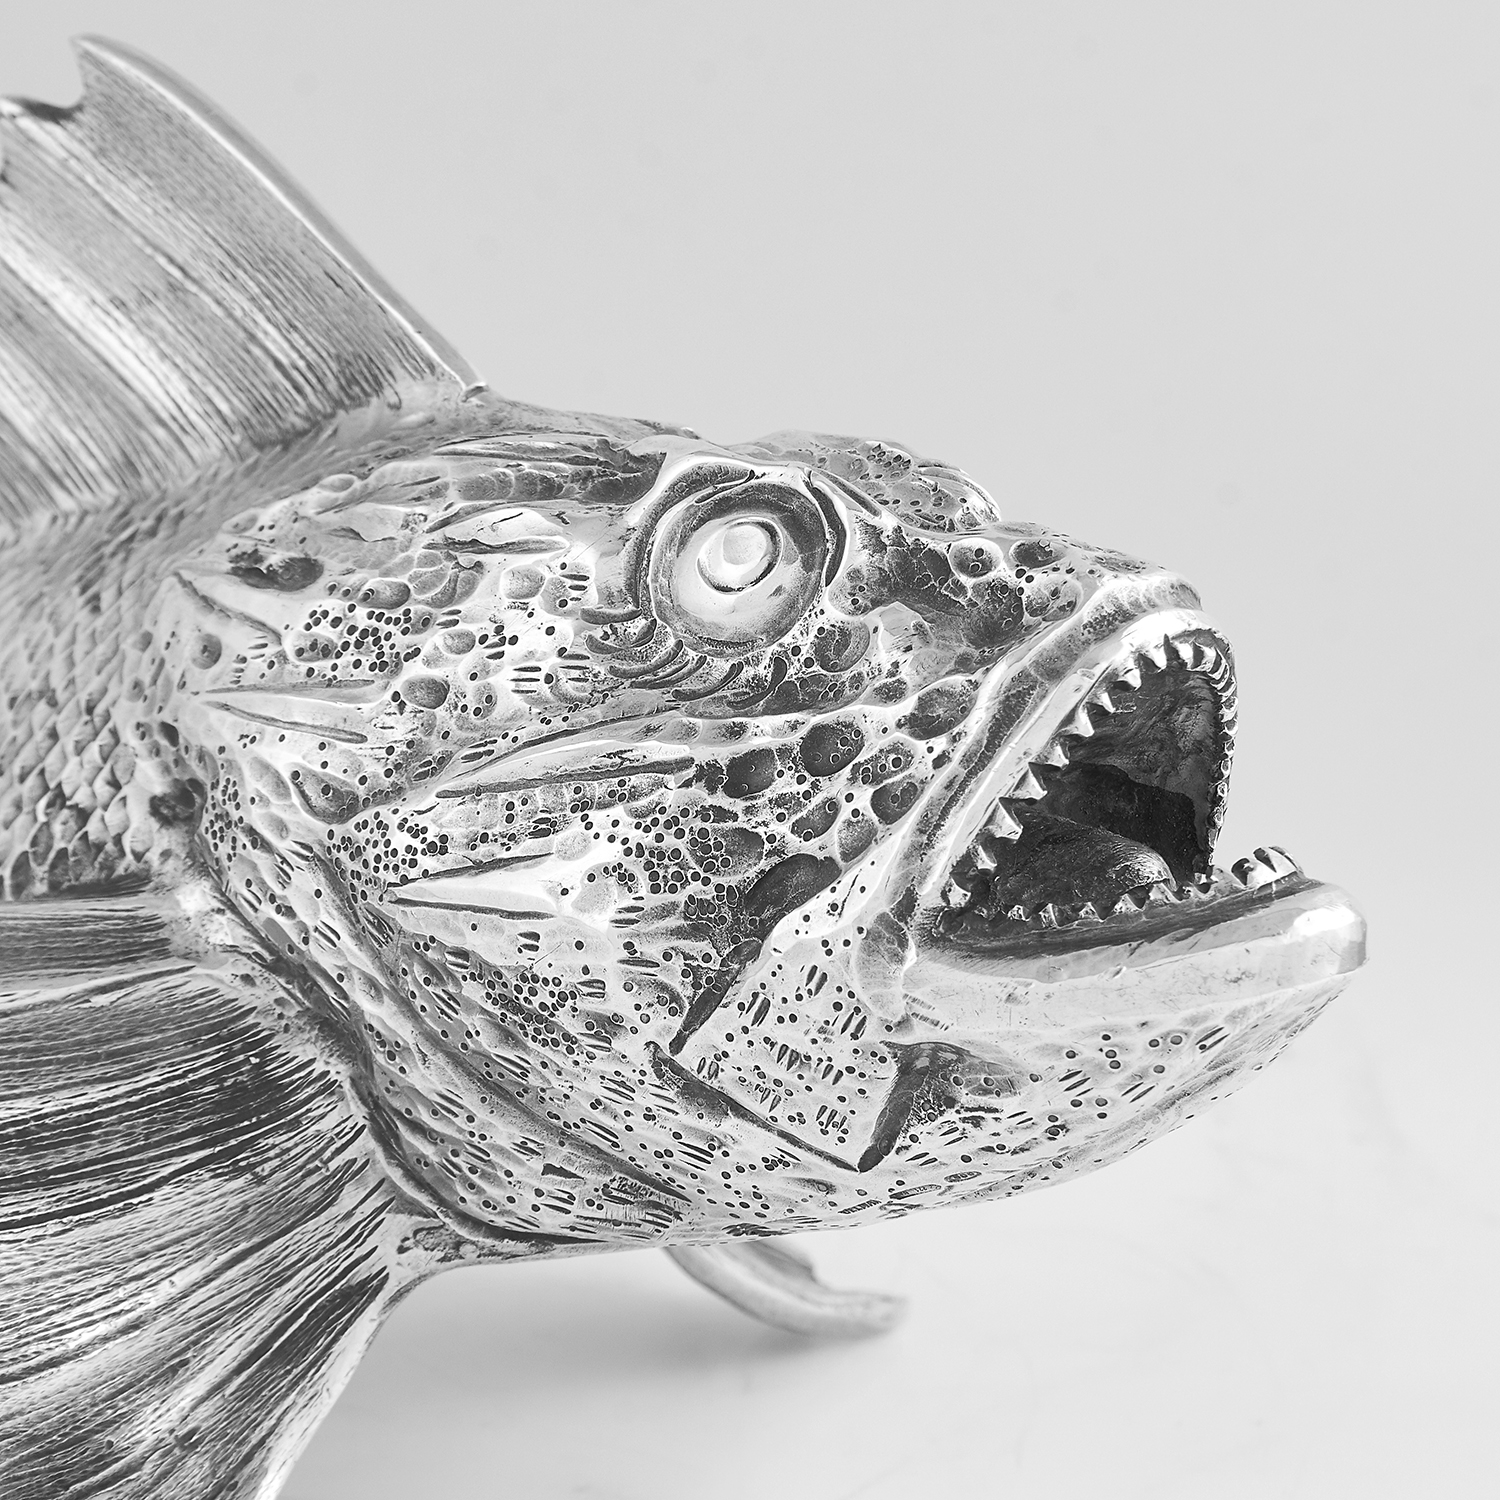 VINTAGE ITALIAN SILVER FISH STATUE CIRCA 1960 cast to depict a fish in detail, Italian marks, 25. - Image 2 of 2